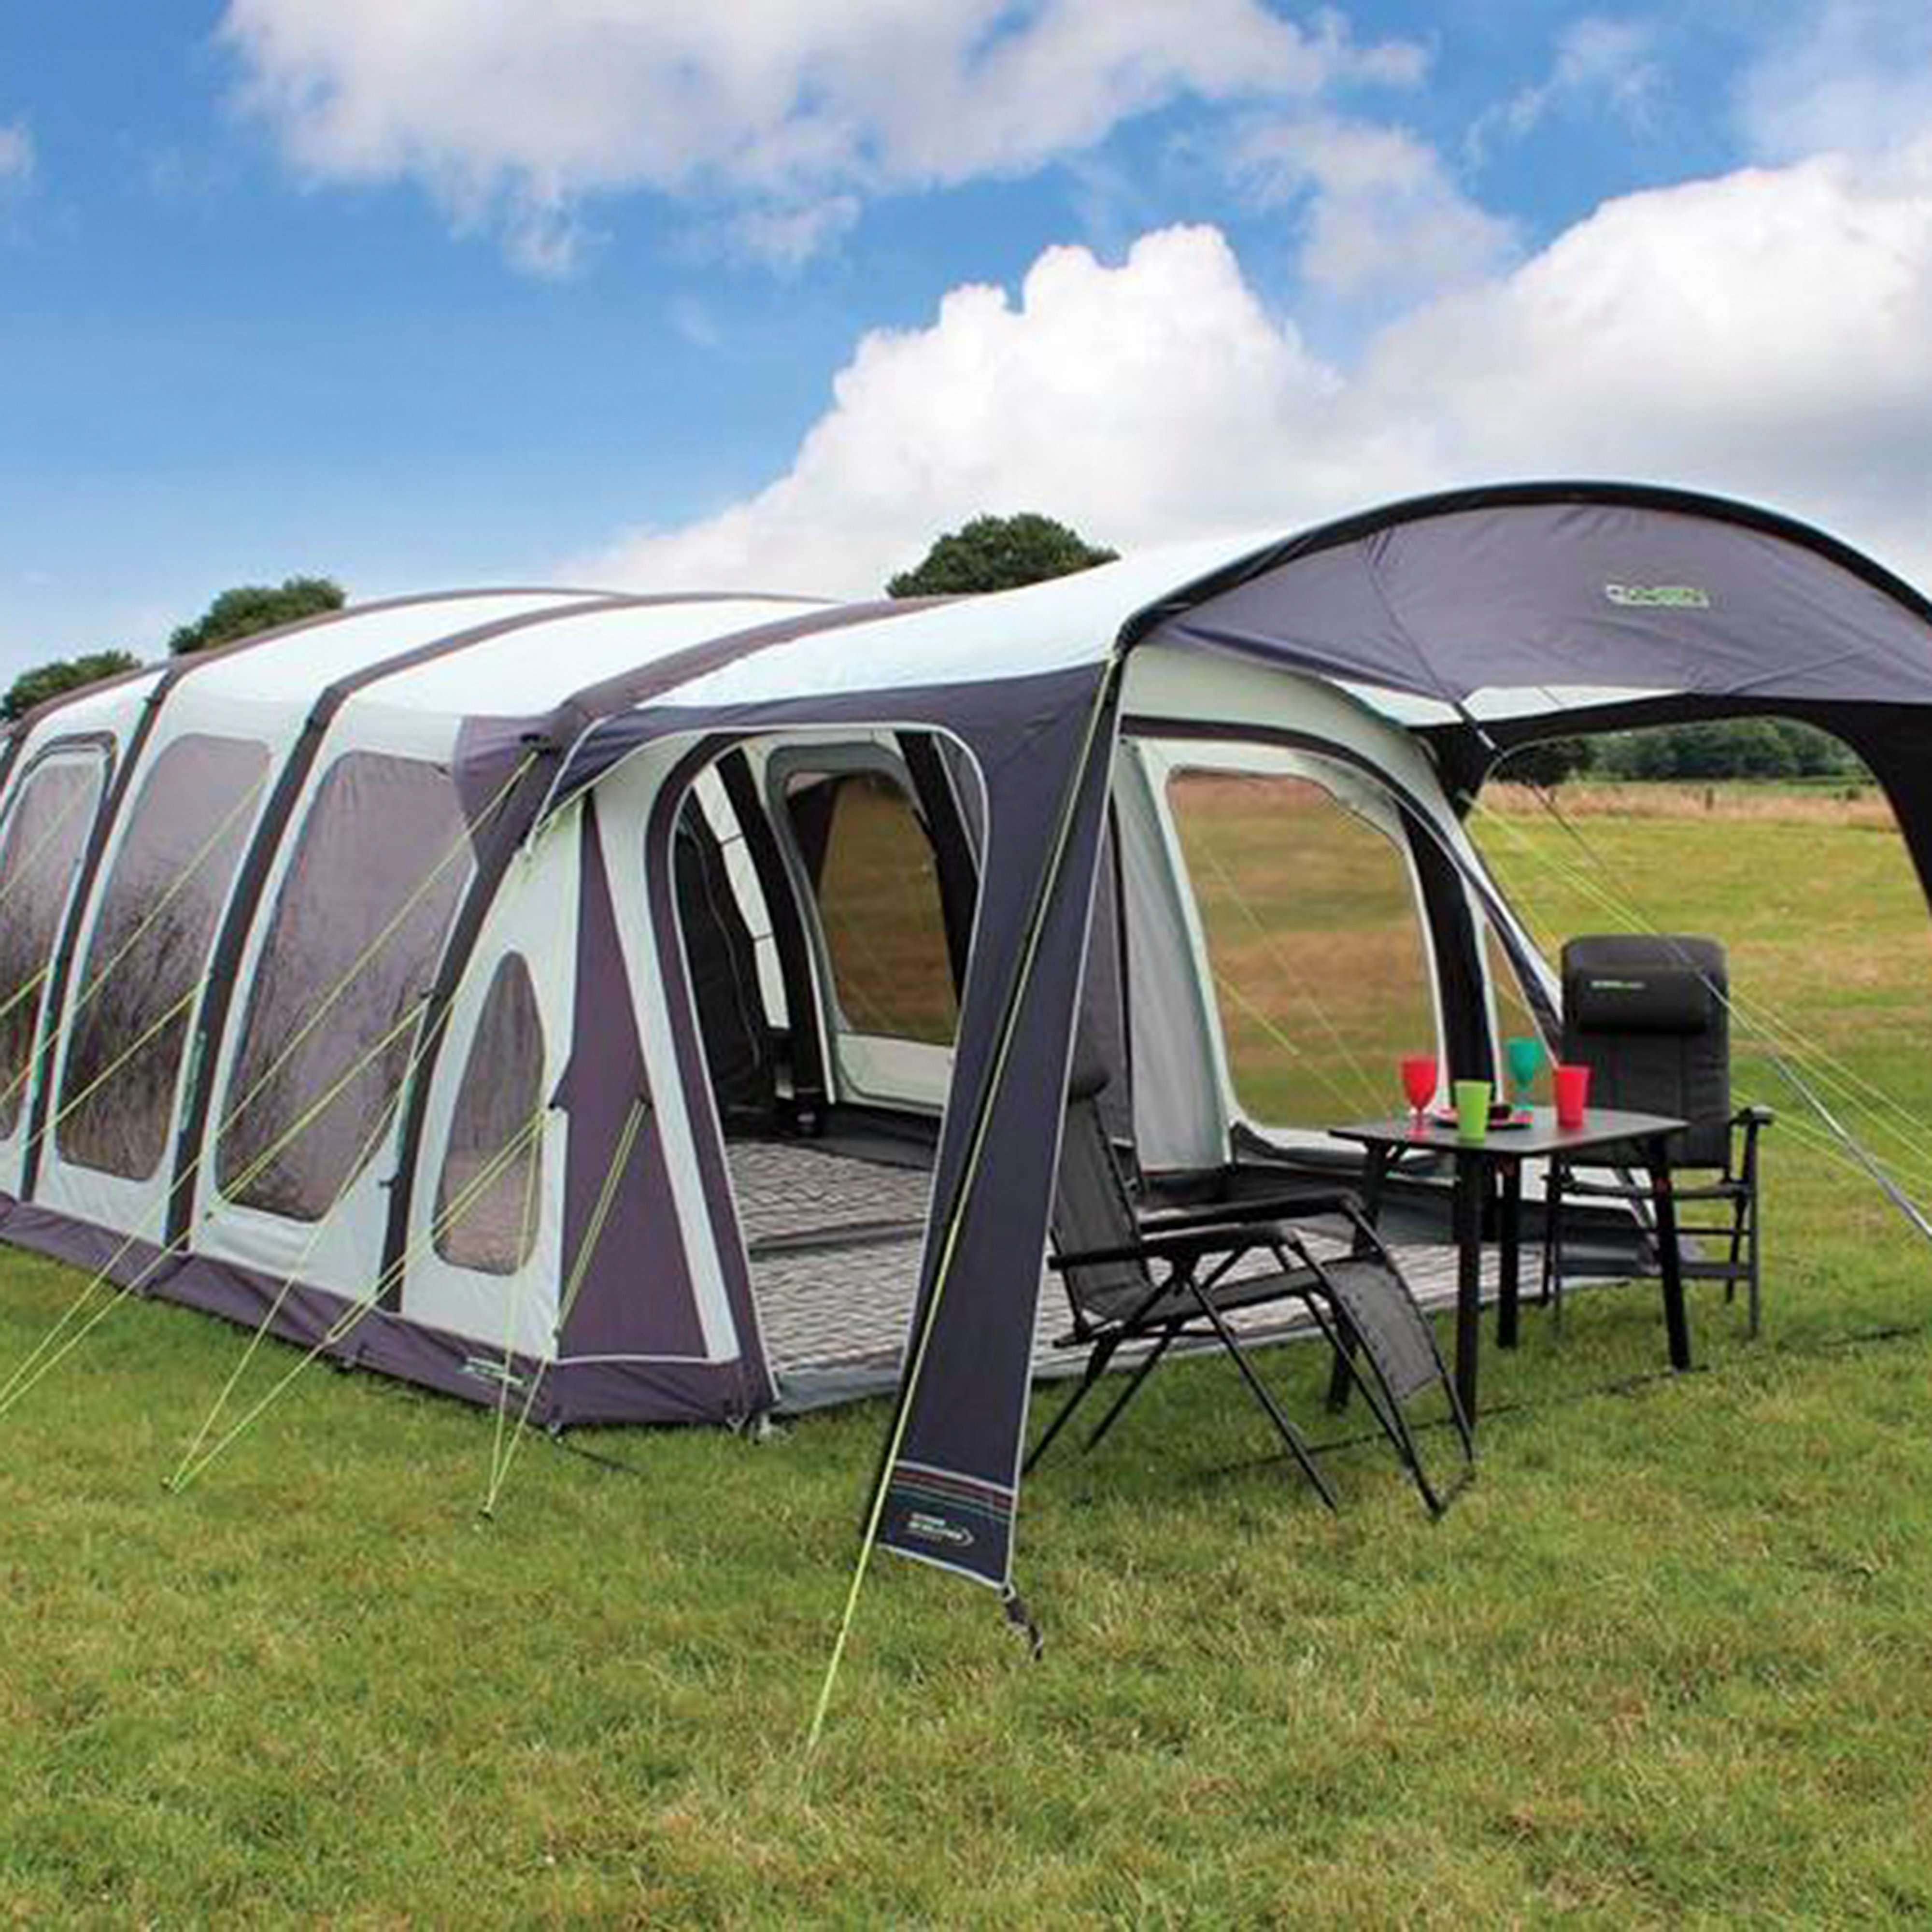 OUTDOOR REVOLUTION Ozone 6.0 XTR Vario Family Tent